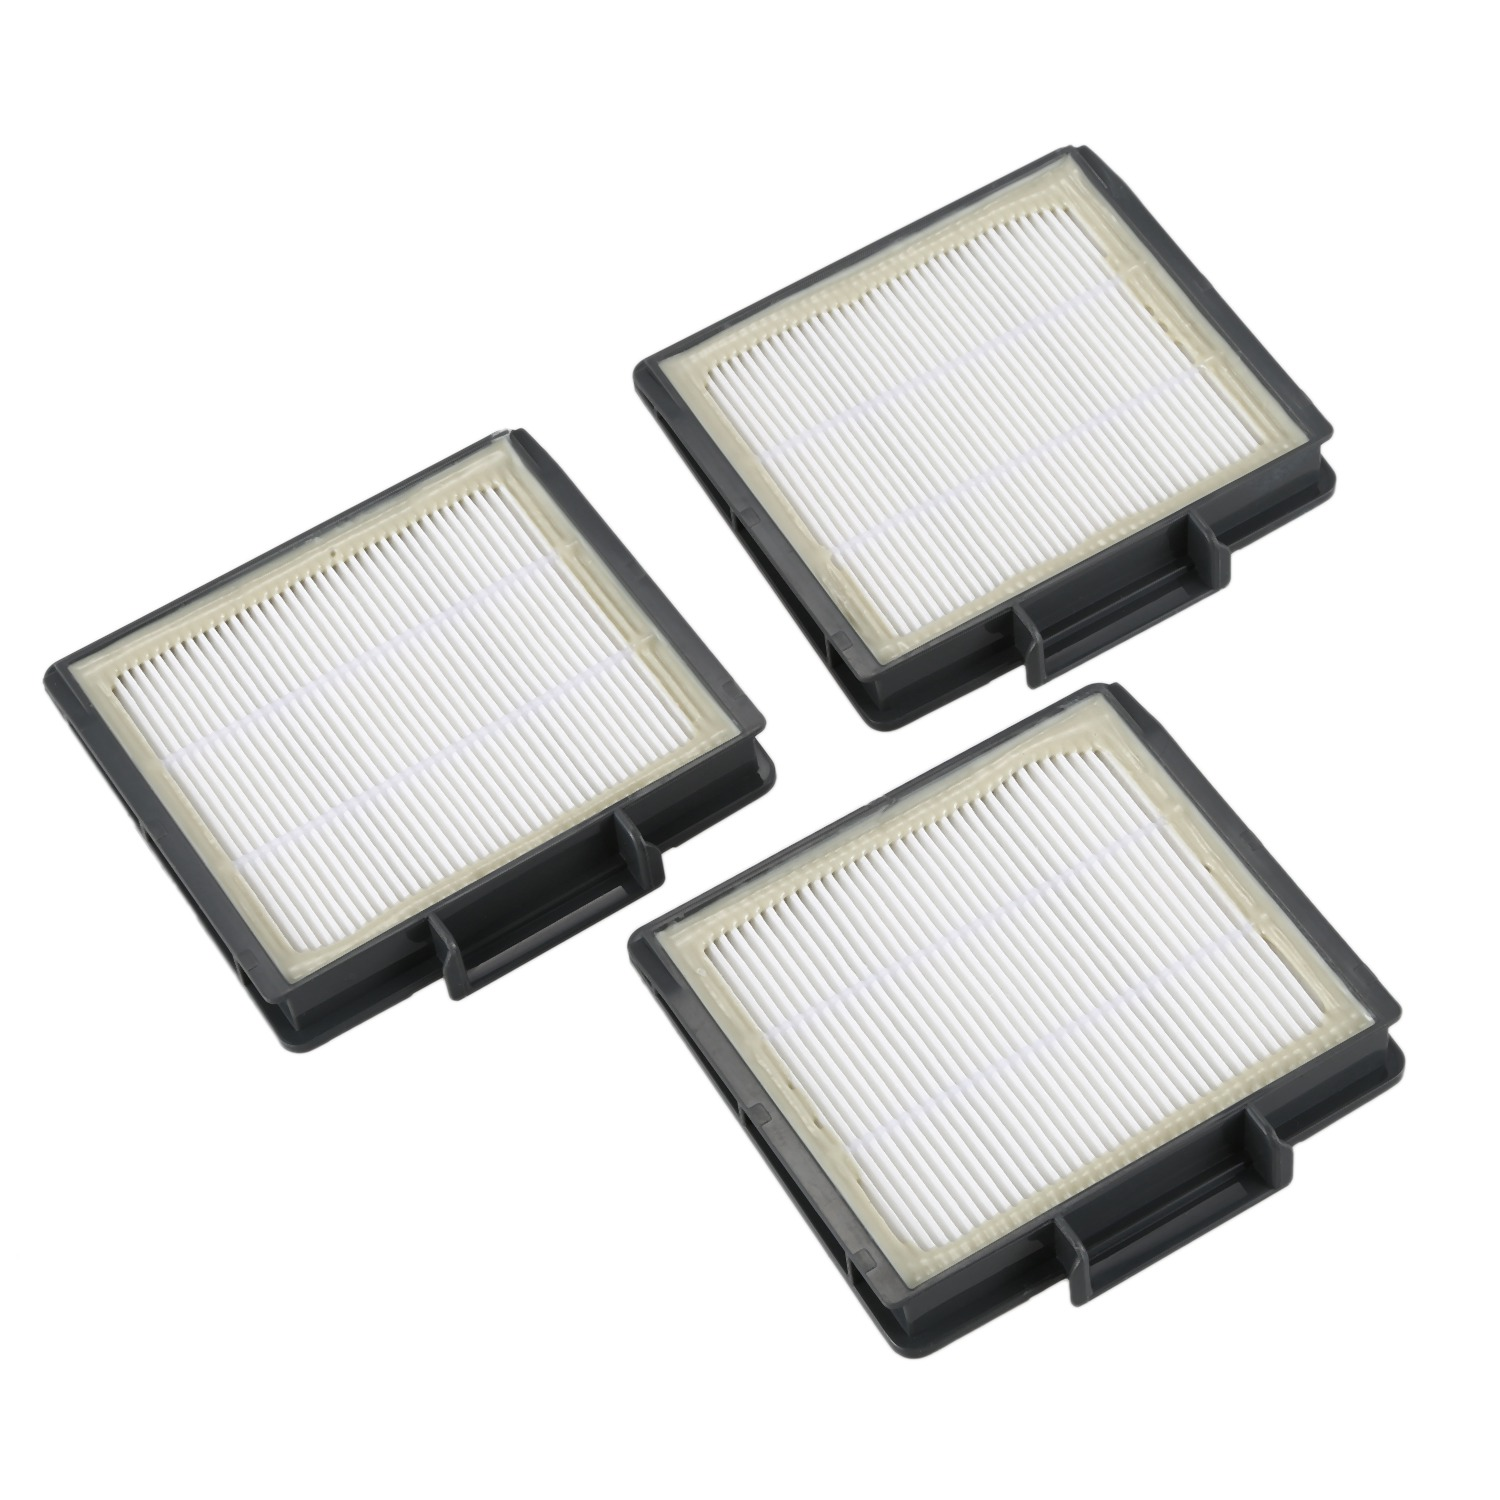 Buy Cheap Lice Vacuum Cleaner Hepa Filter Kit Replacement For Shark Ion Robot Vacuum Rv850 With Wlan Home Appliances Home Appliance Parts